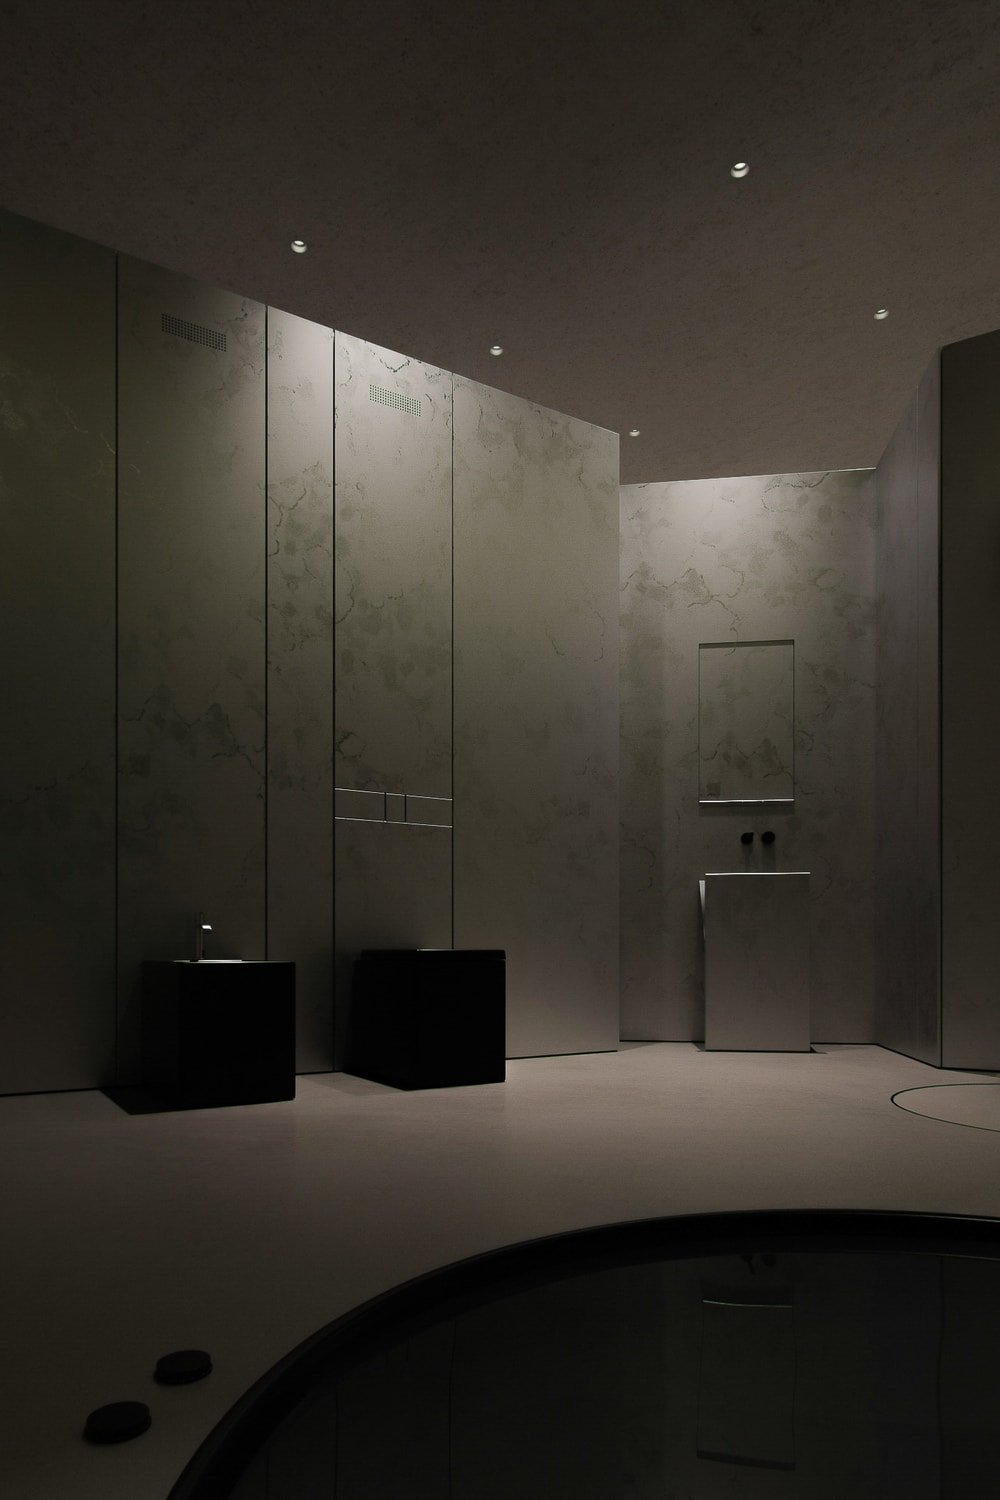 This bathroom has a shower area, sinks and a bathtub embedded onto the floor.